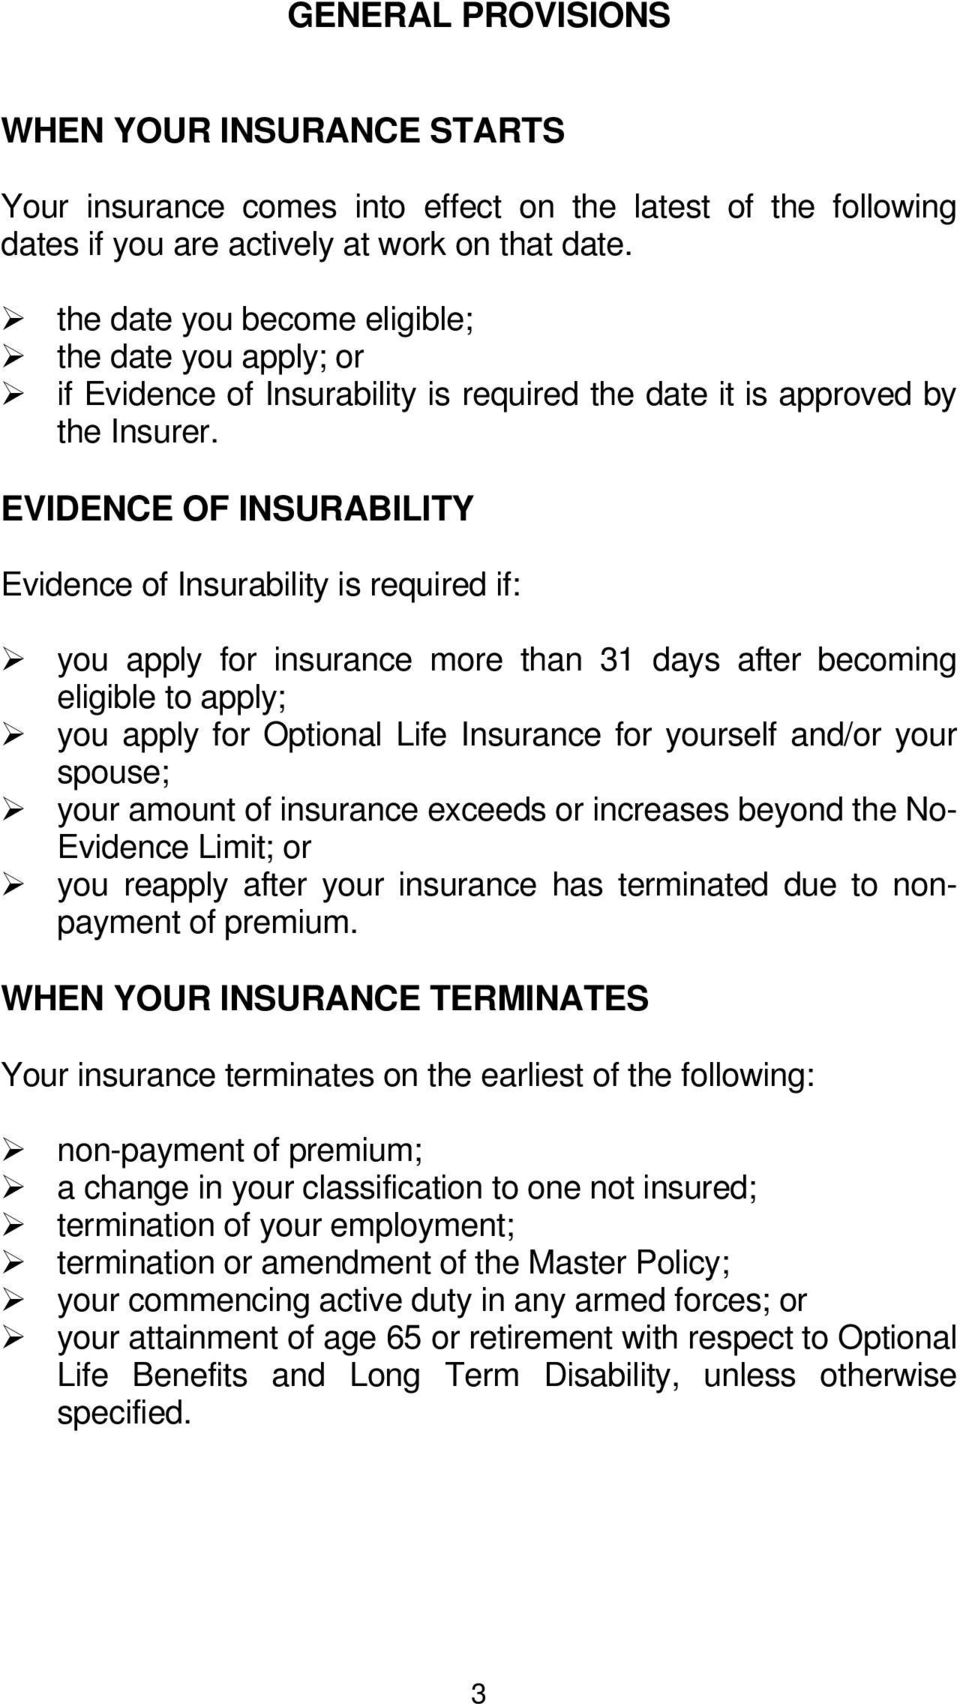 EVIDENCE OF INSURABILITY Evidence of Insurability is required if: you apply for insurance more than 31 days after becoming eligible to apply; you apply for Optional Life Insurance for yourself and/or